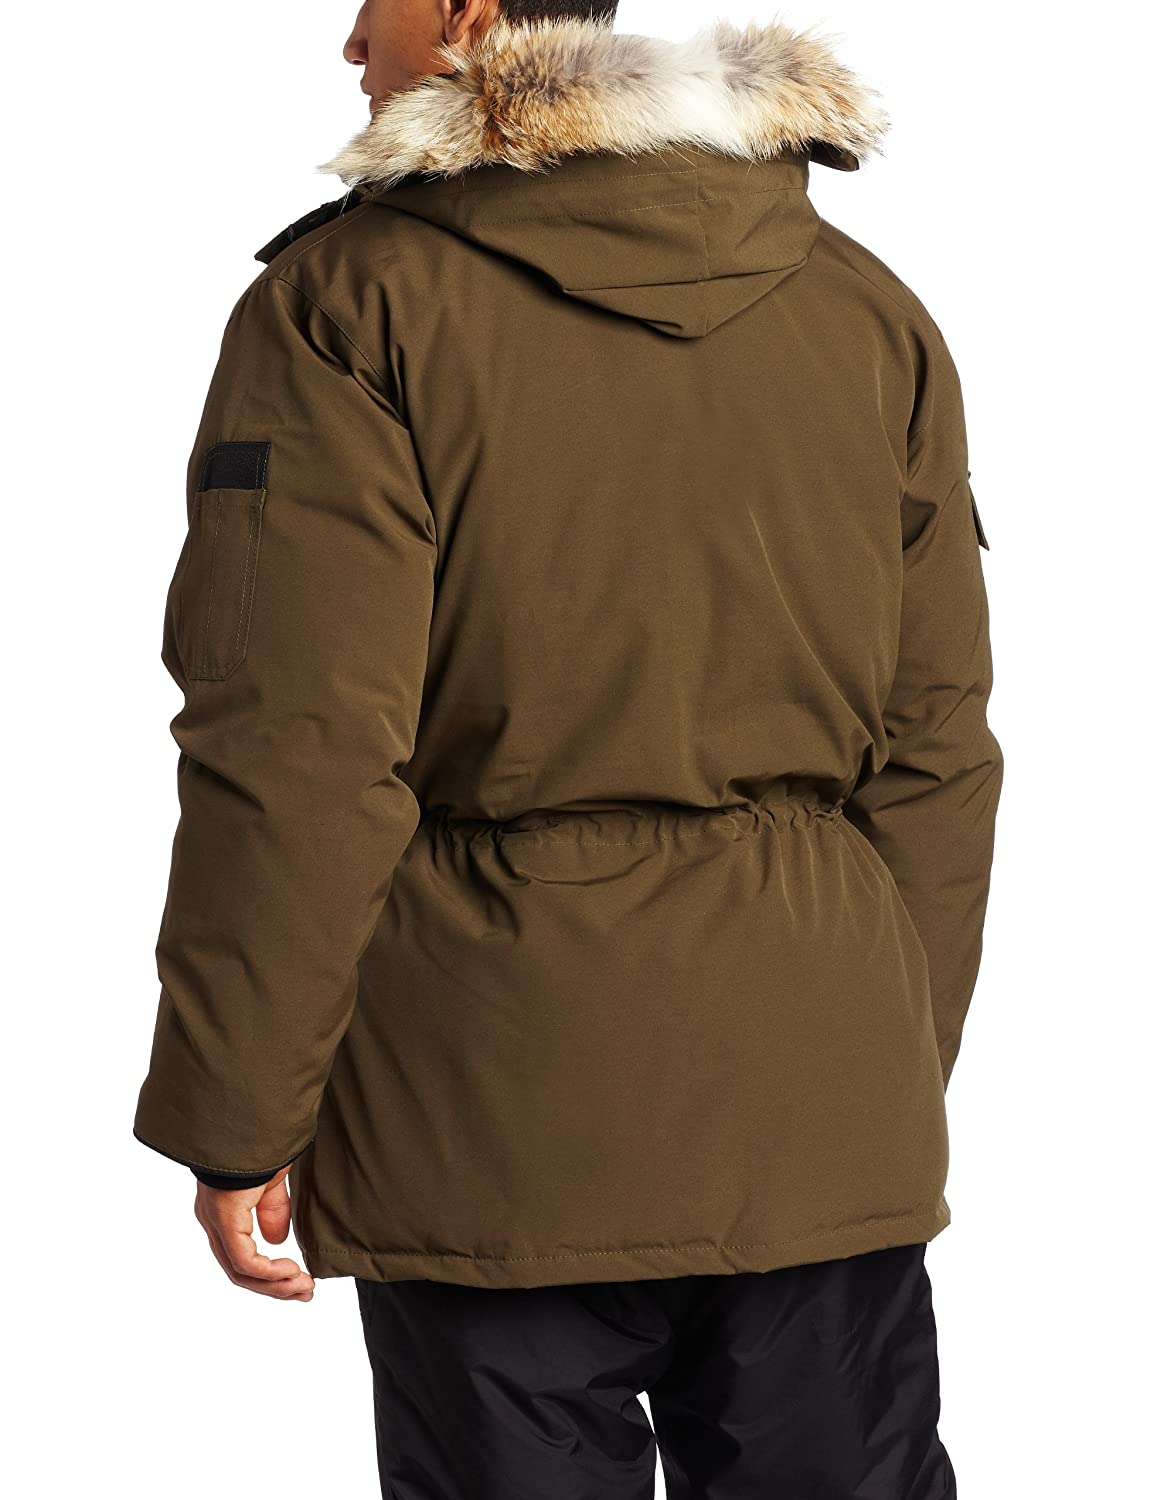 amazon com canada goose men s expedition parka coat sports outdoors rh amazon com